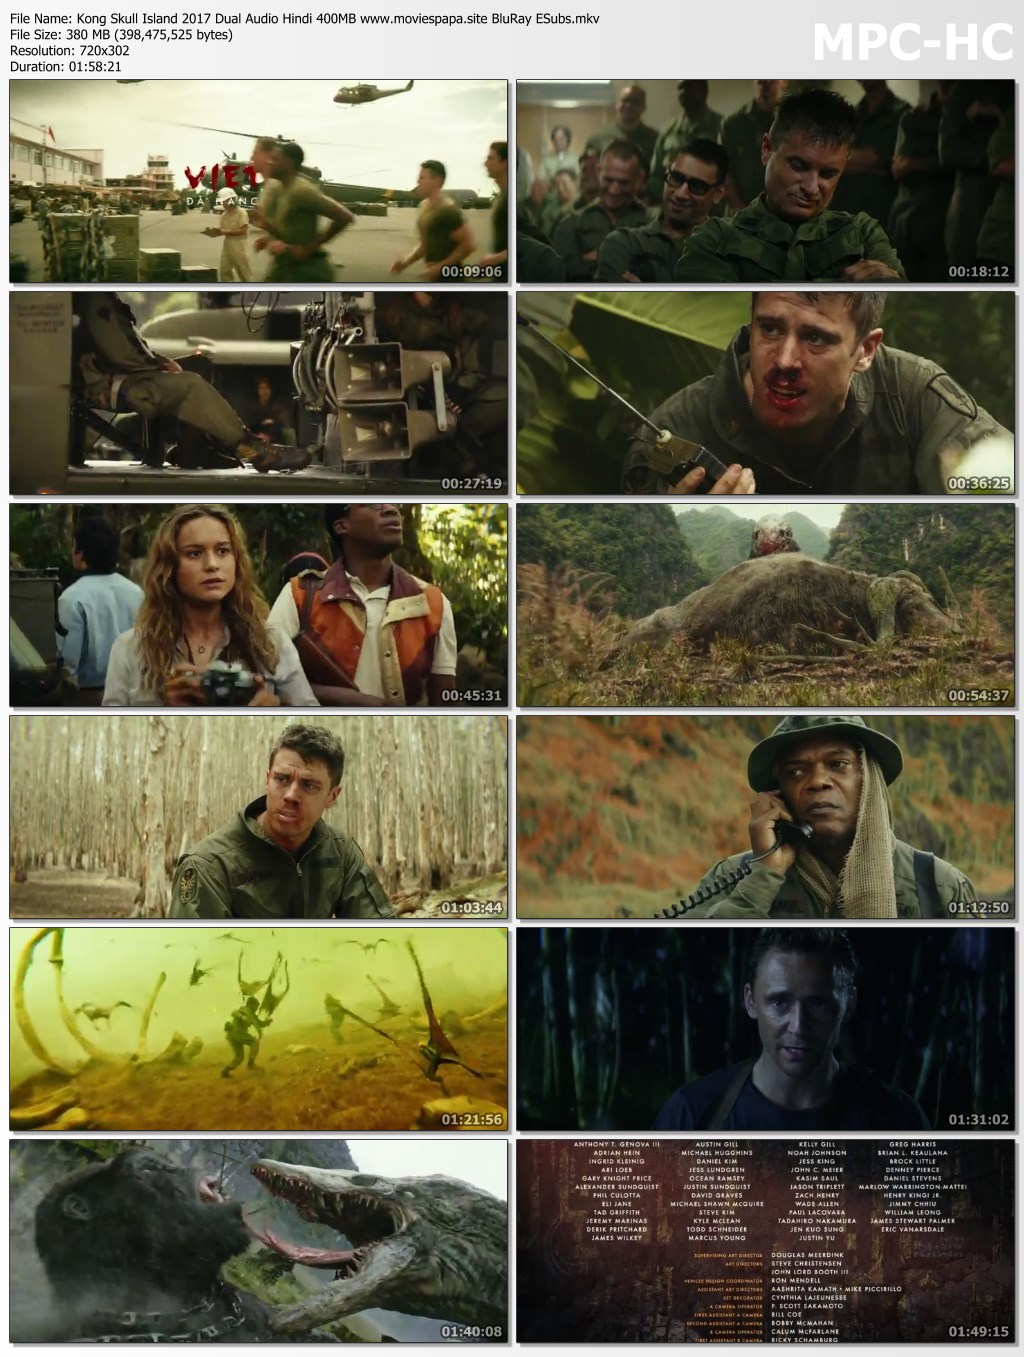 kong skull island full movie download in hindi 300mb